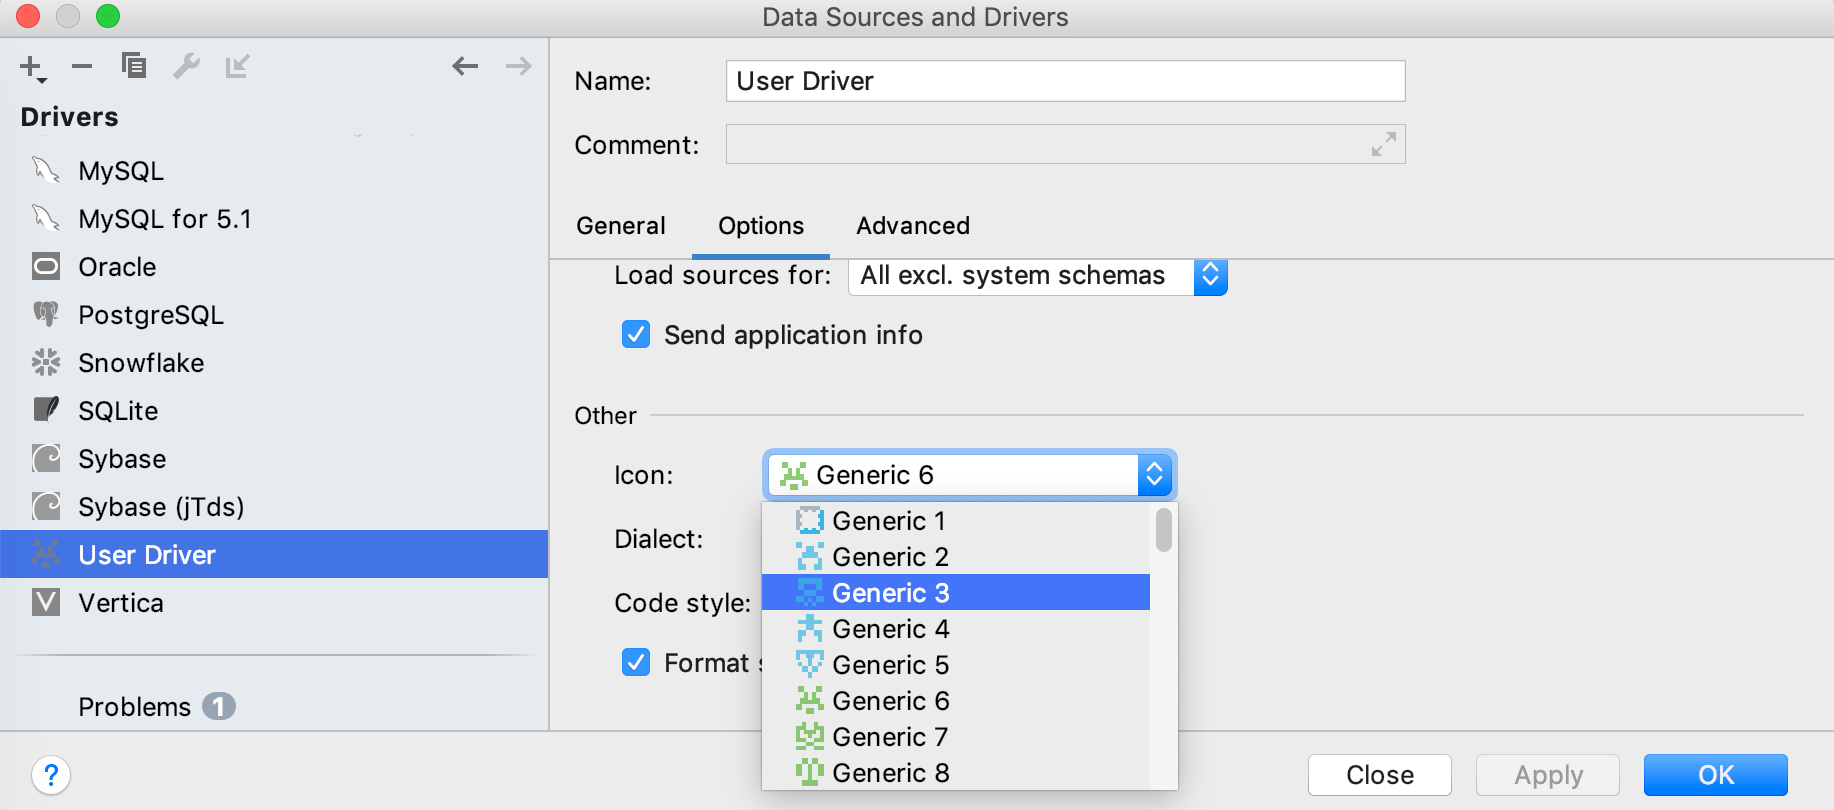 Add an icon to the user driver